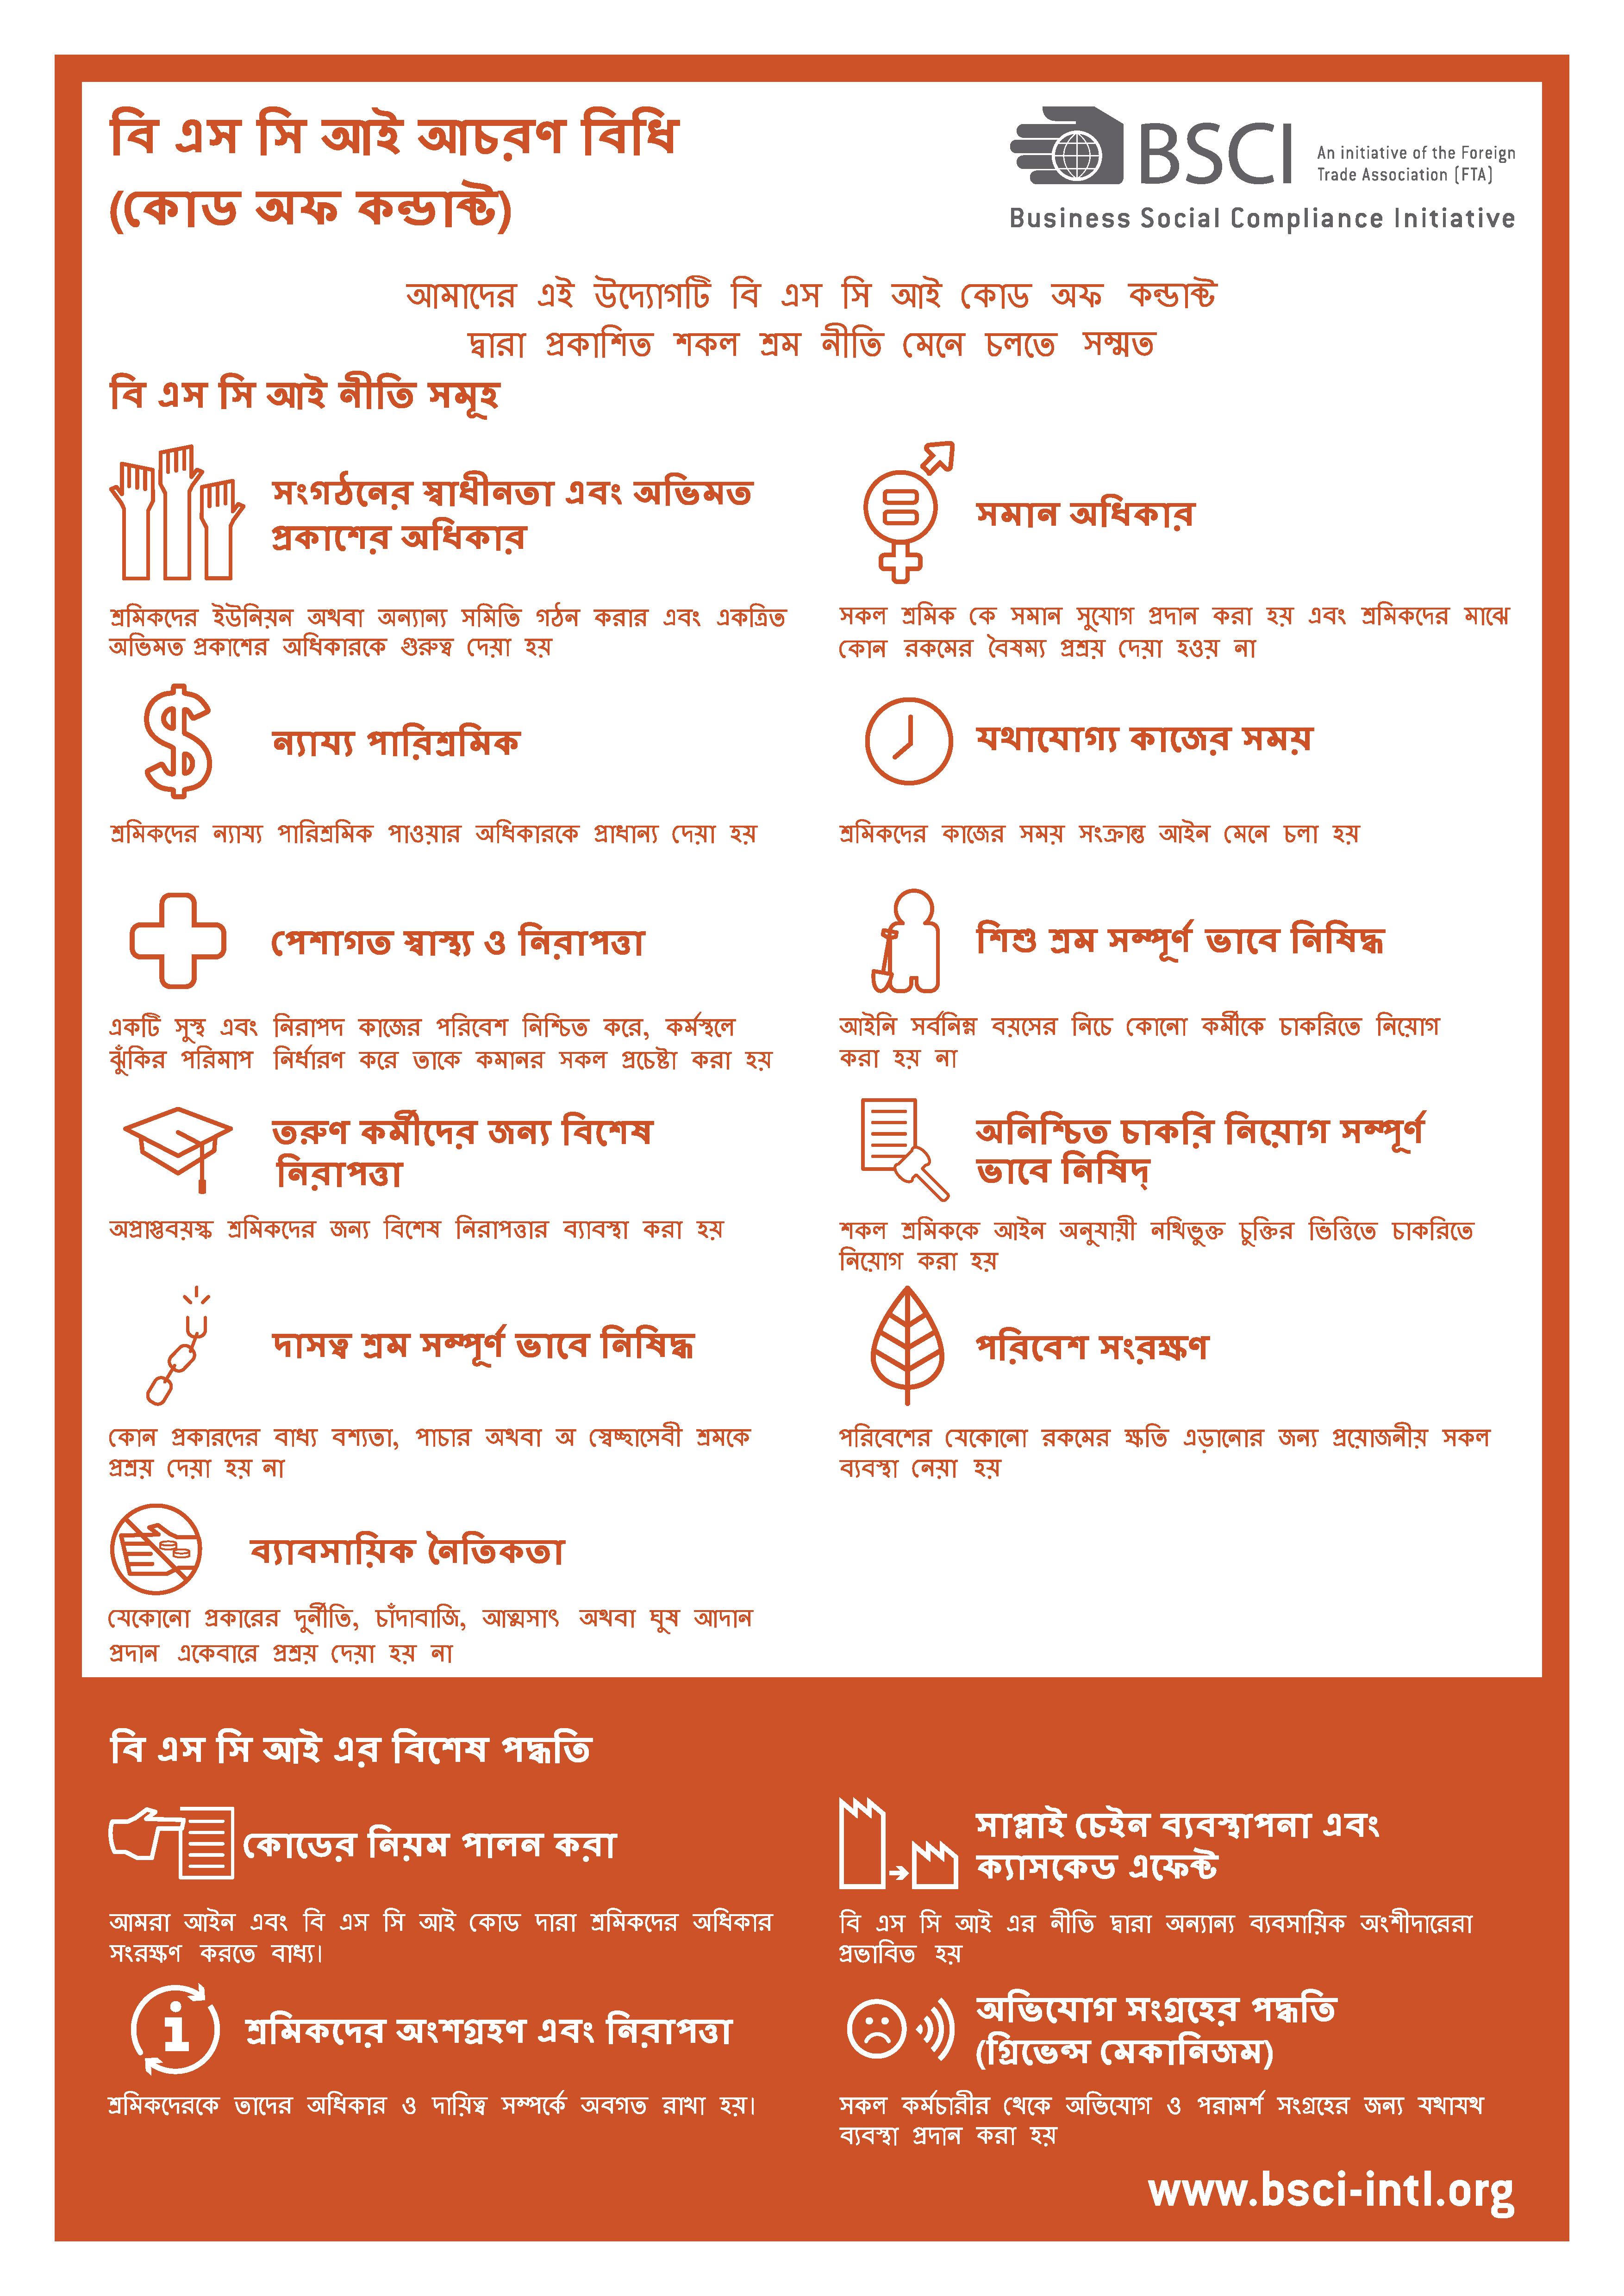 BN-BSCI Code of Conduct Poster Version